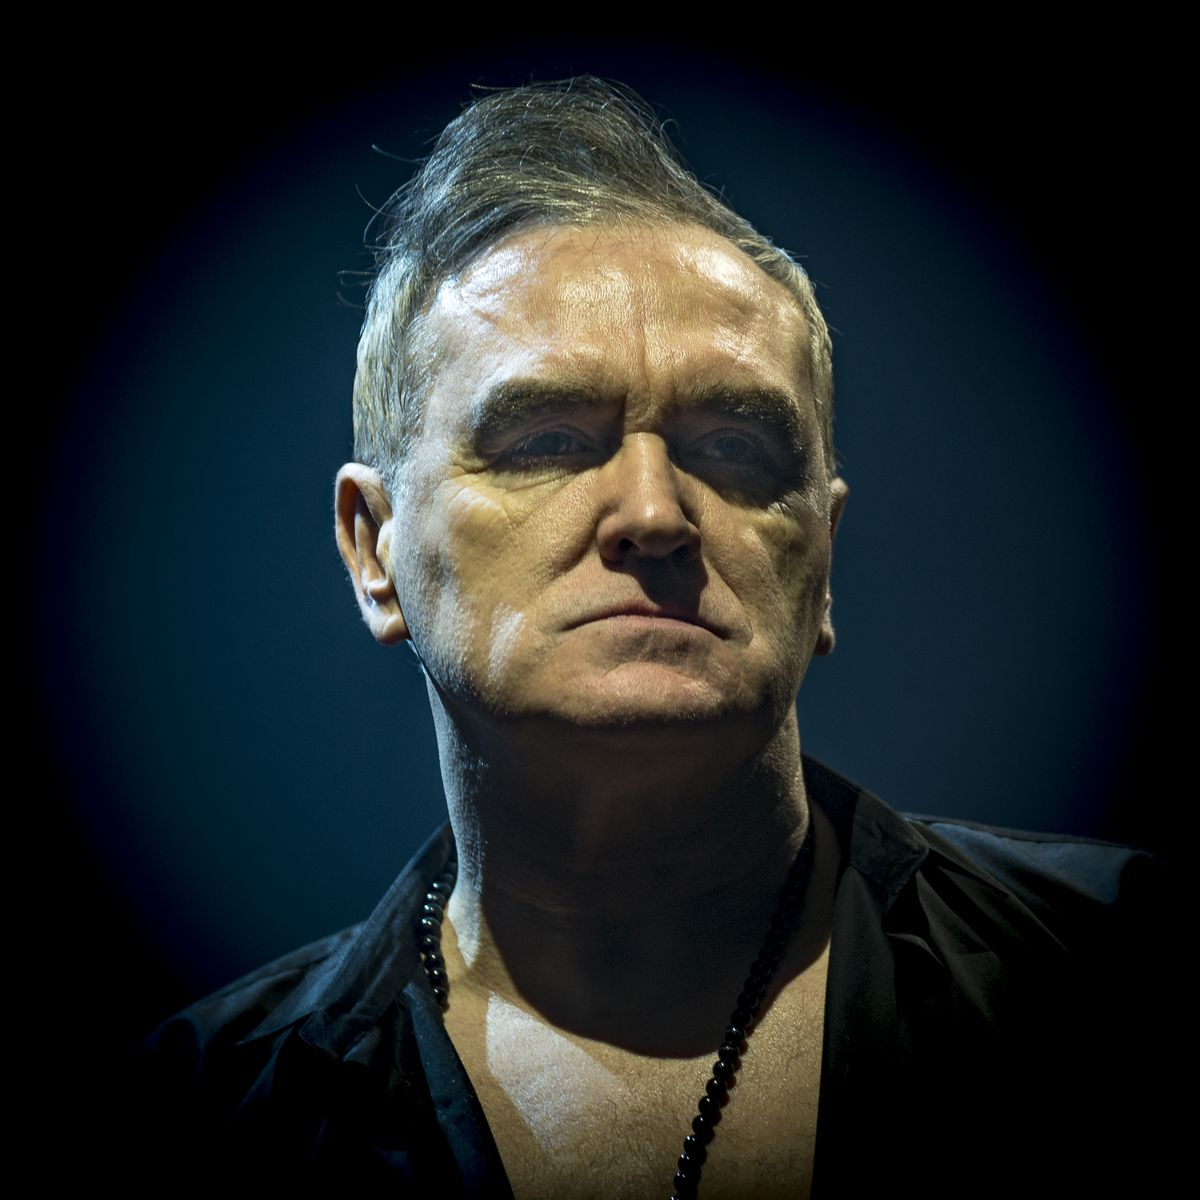 Morrissey. Pictures by: Dave Cox